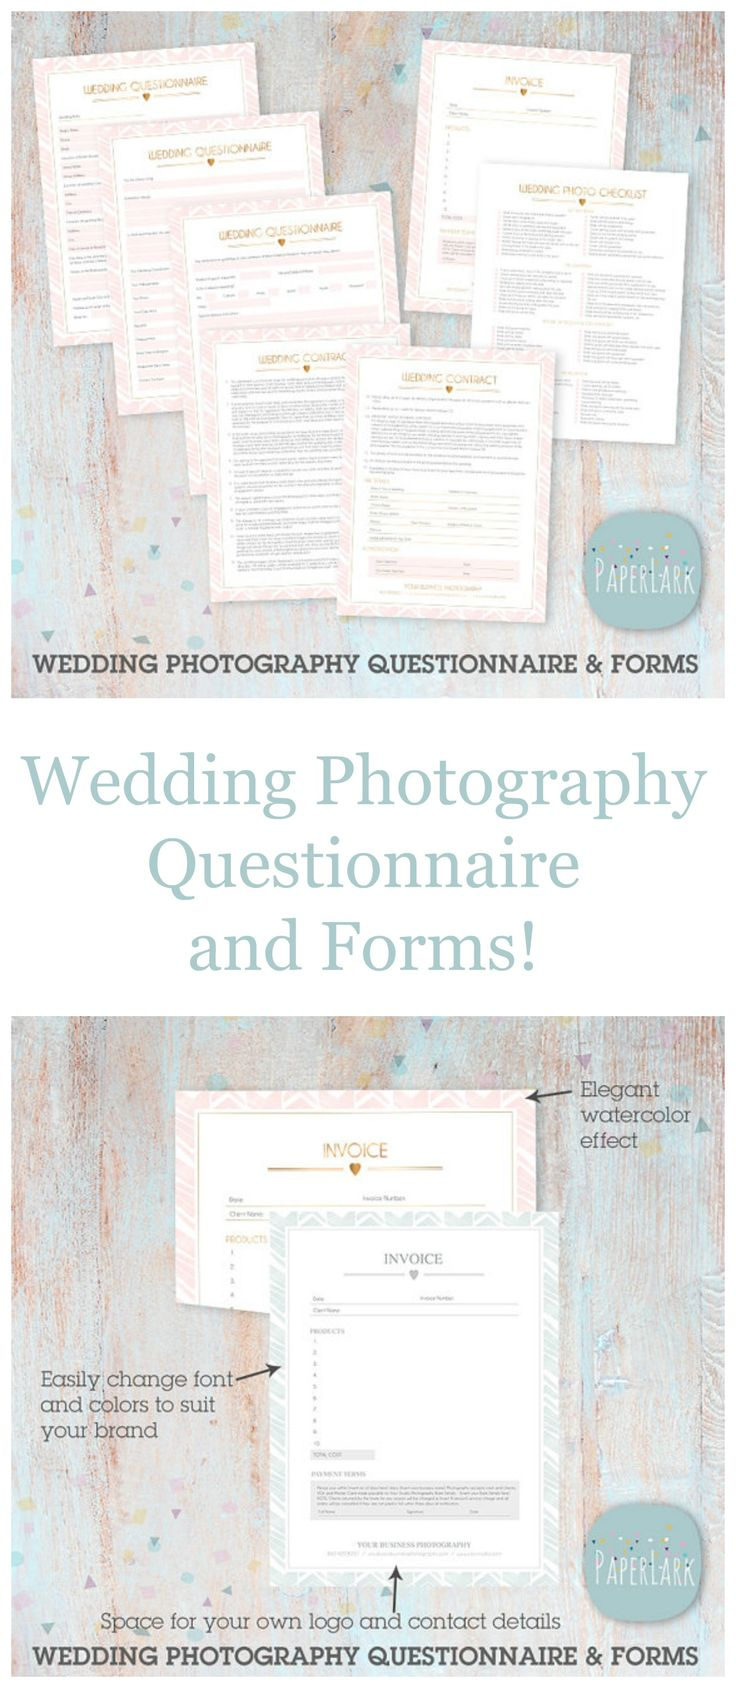 Start your business off looking professional! Wedding Photography Questionnaire and Forms. Wedding Photography Questionnaire, Contract and Business Forms Photoshop Template. #ad